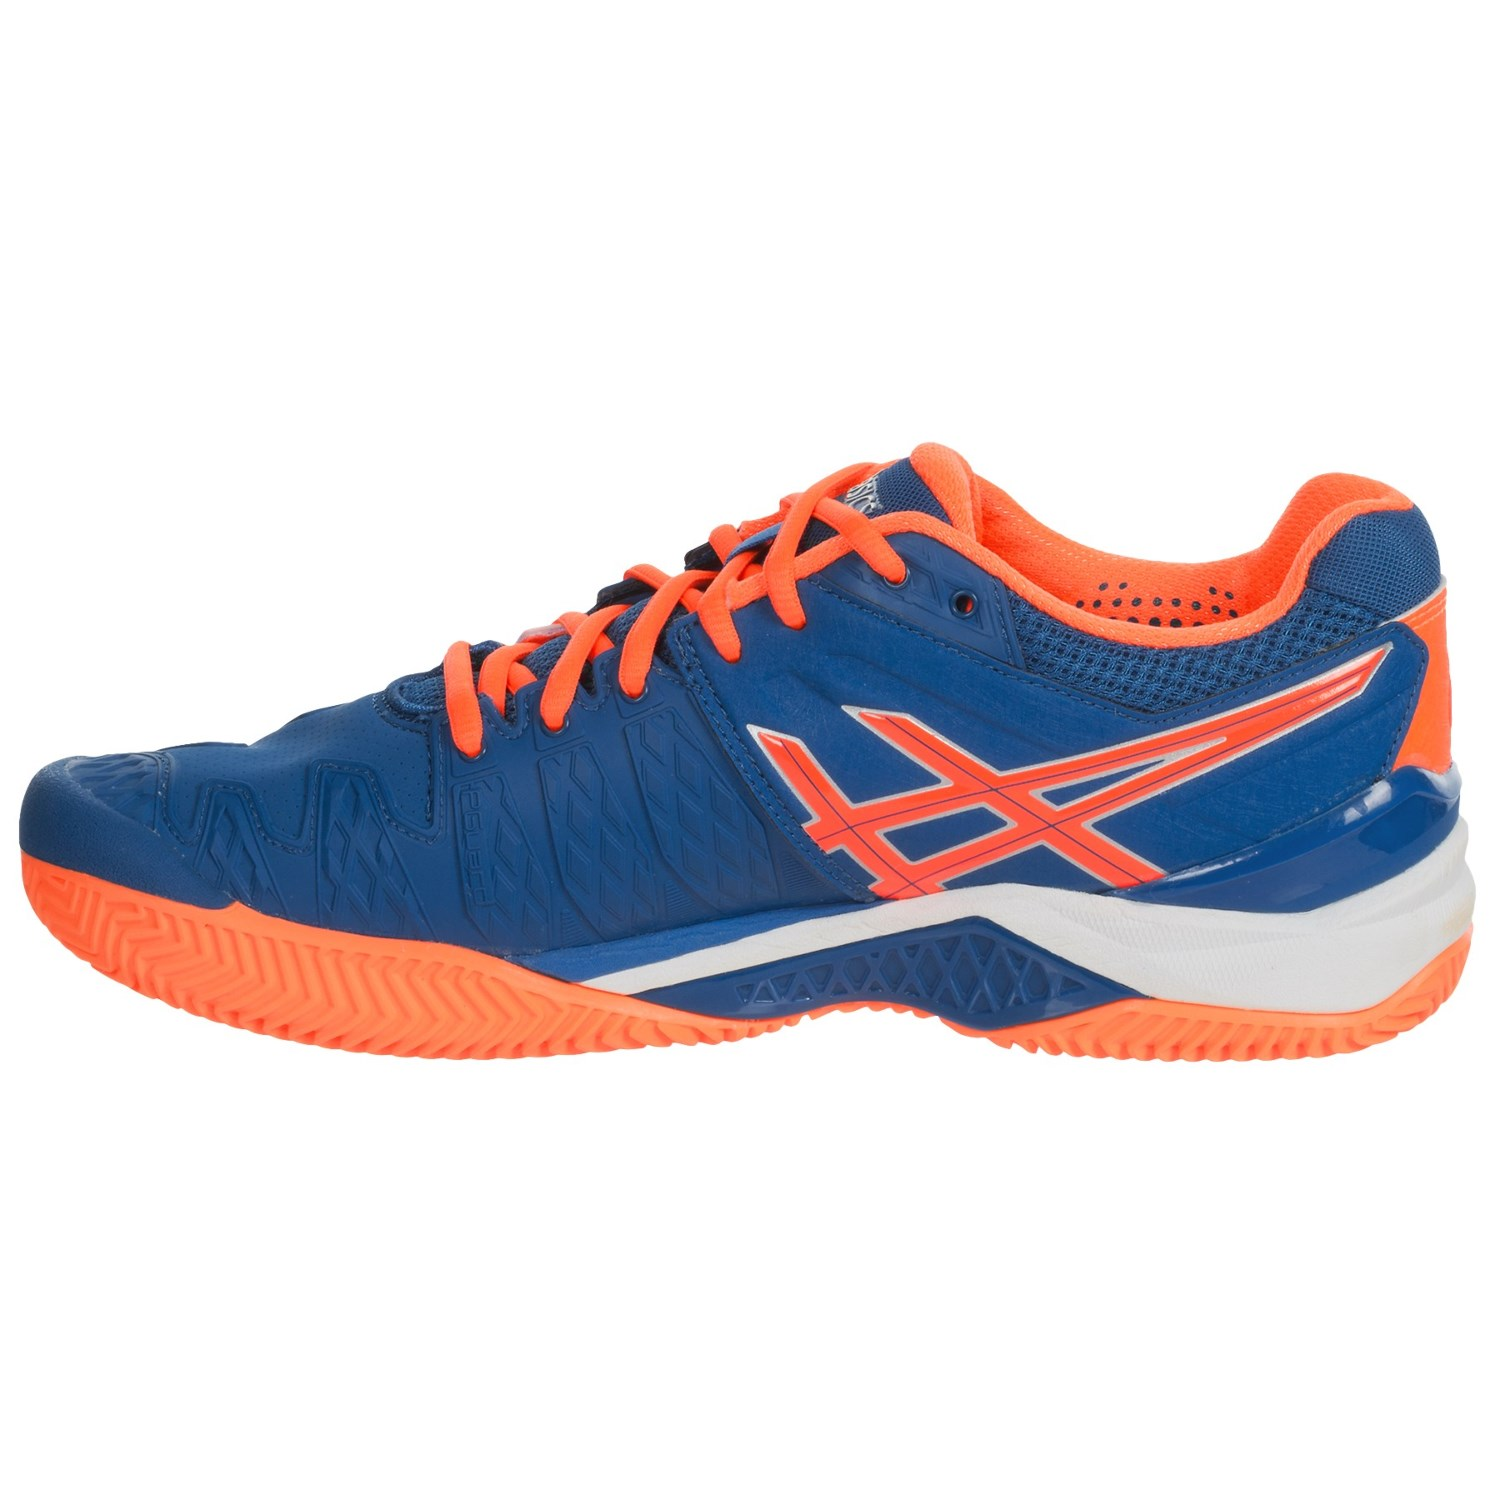 Clay Court Tennis Shoes Reviews